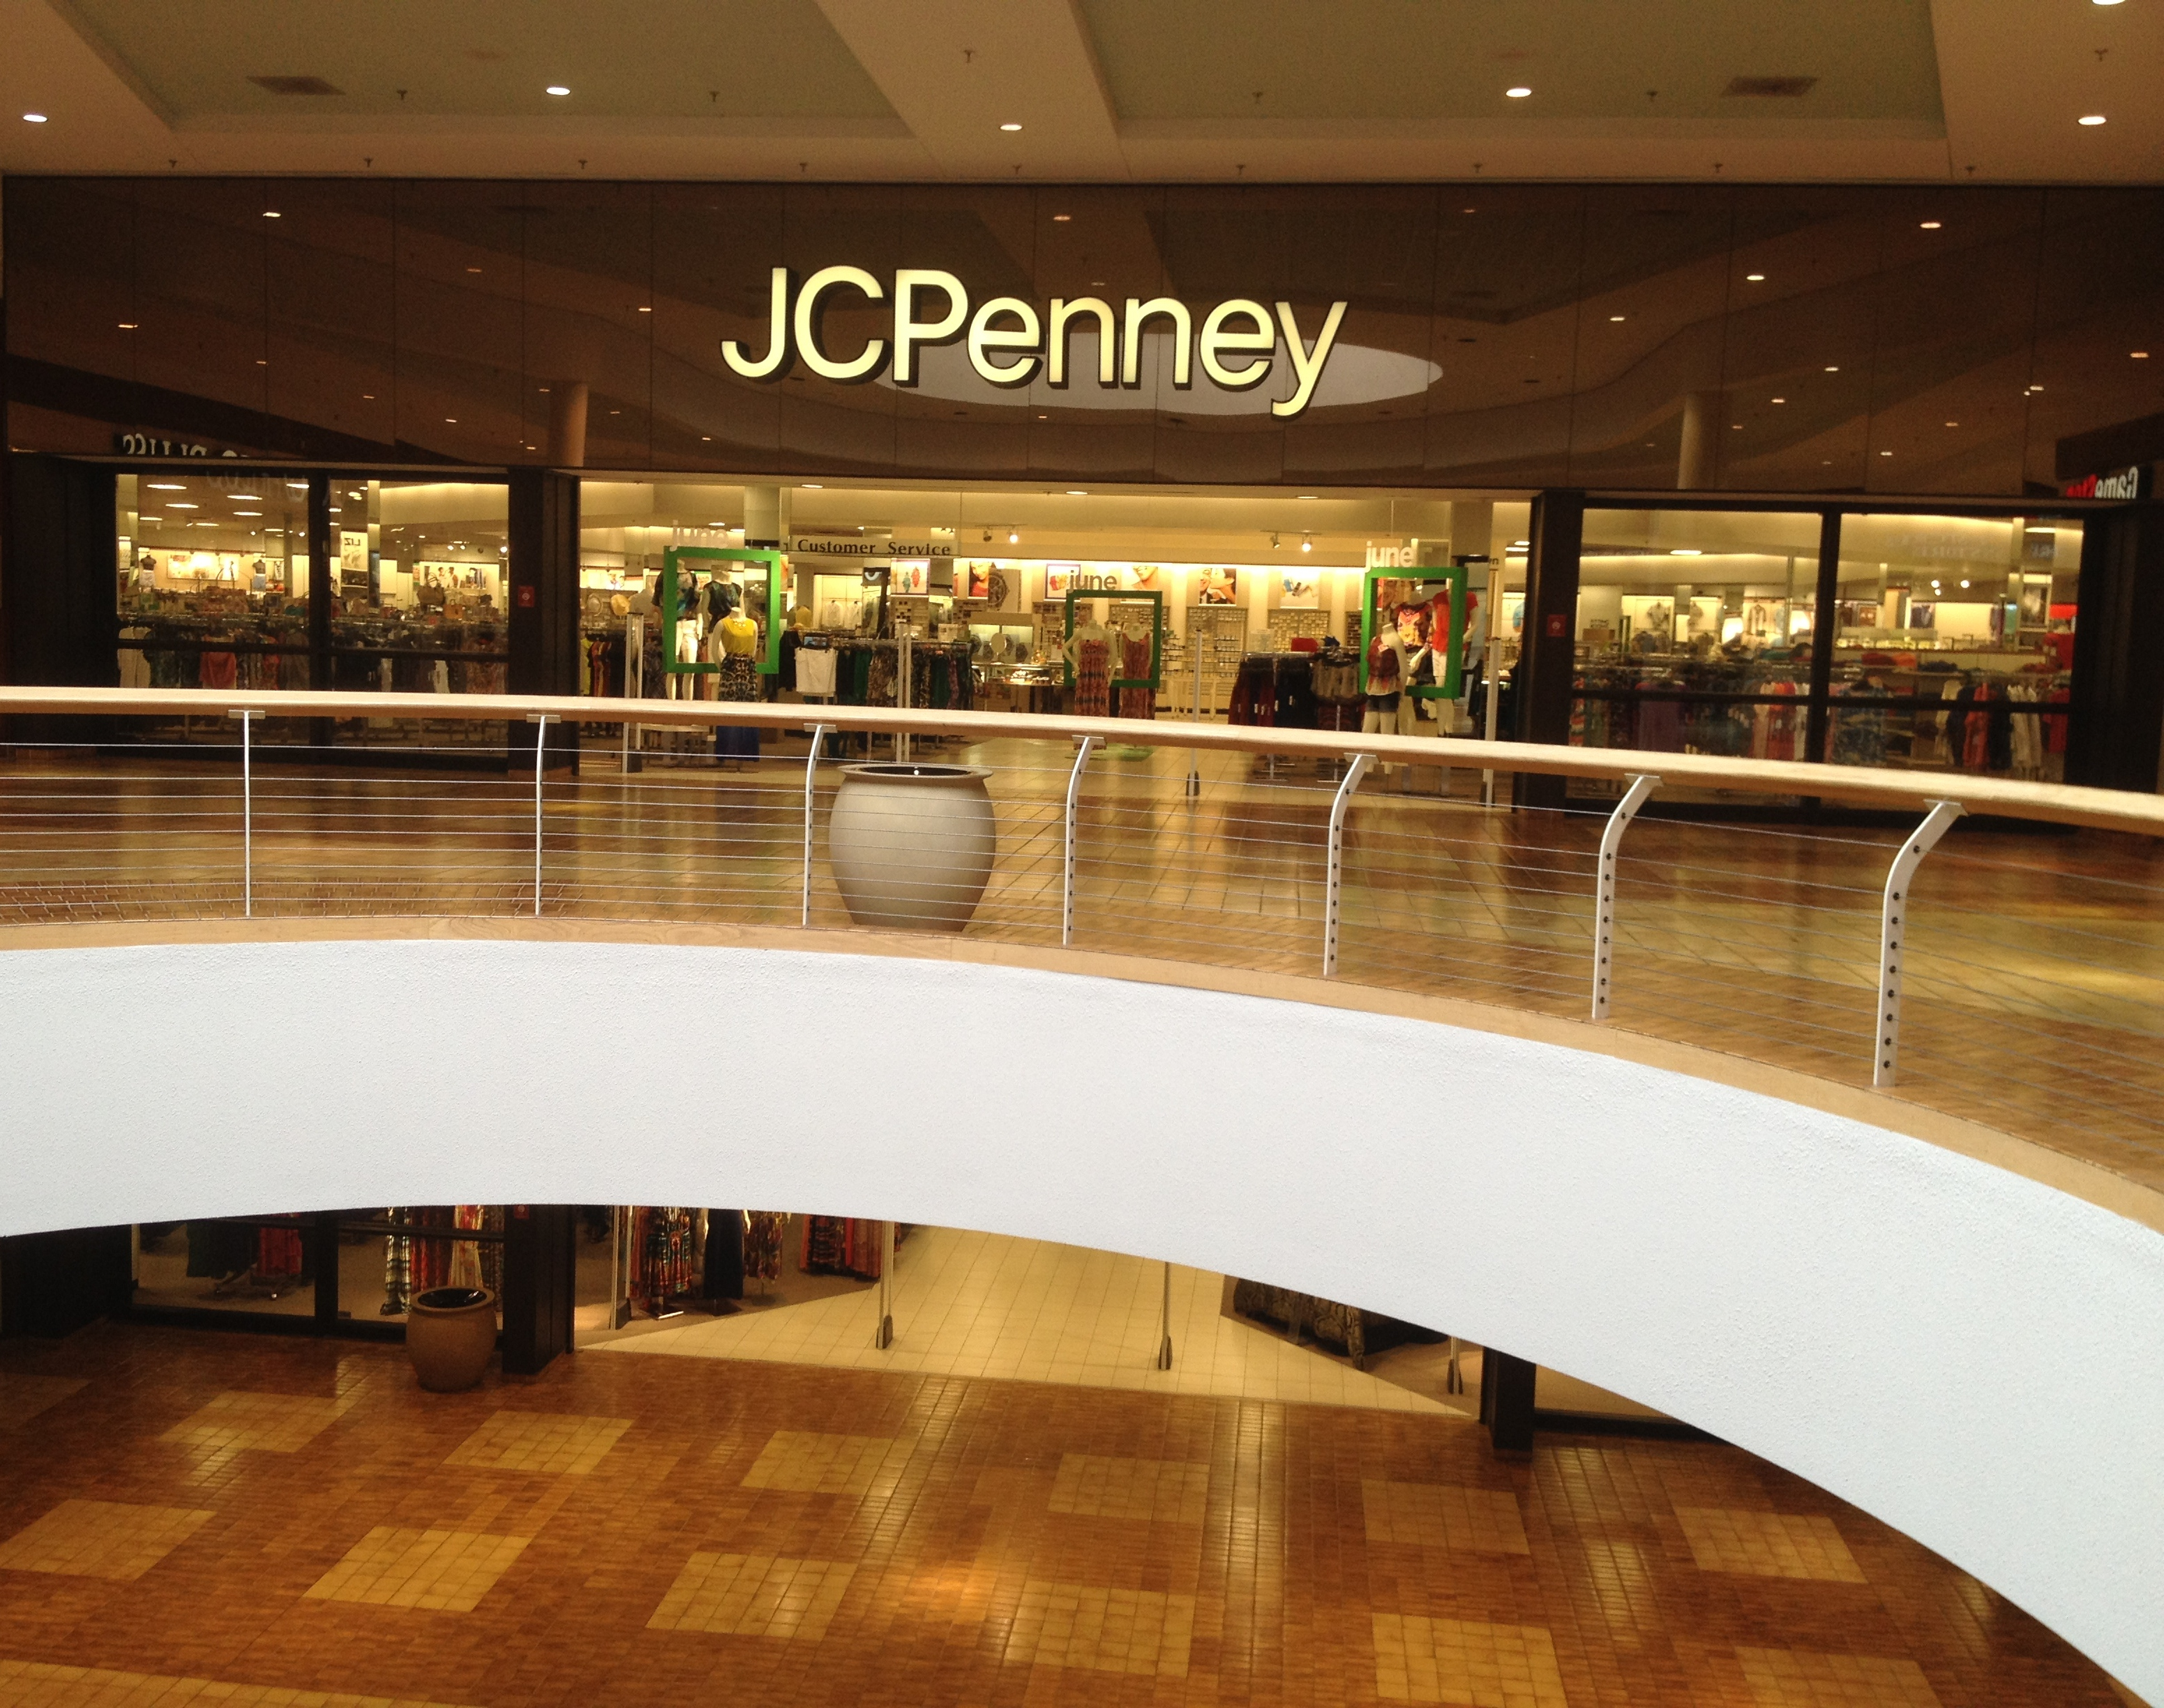 Image gallery jcpenney mall for Jc penneys